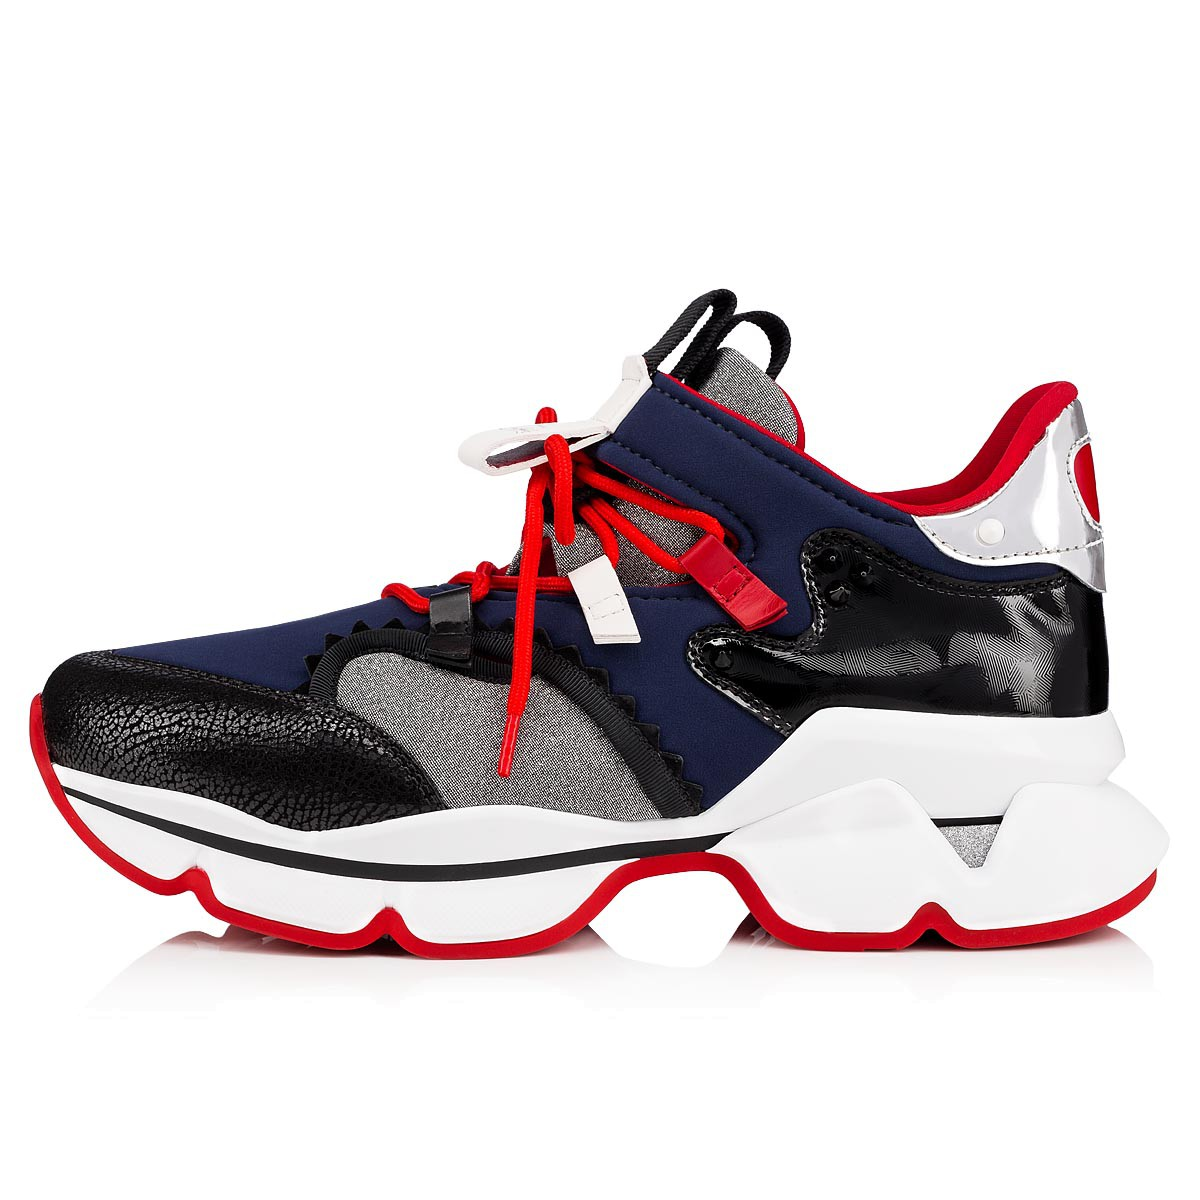 Shoes - Red Runner - Christian Louboutin